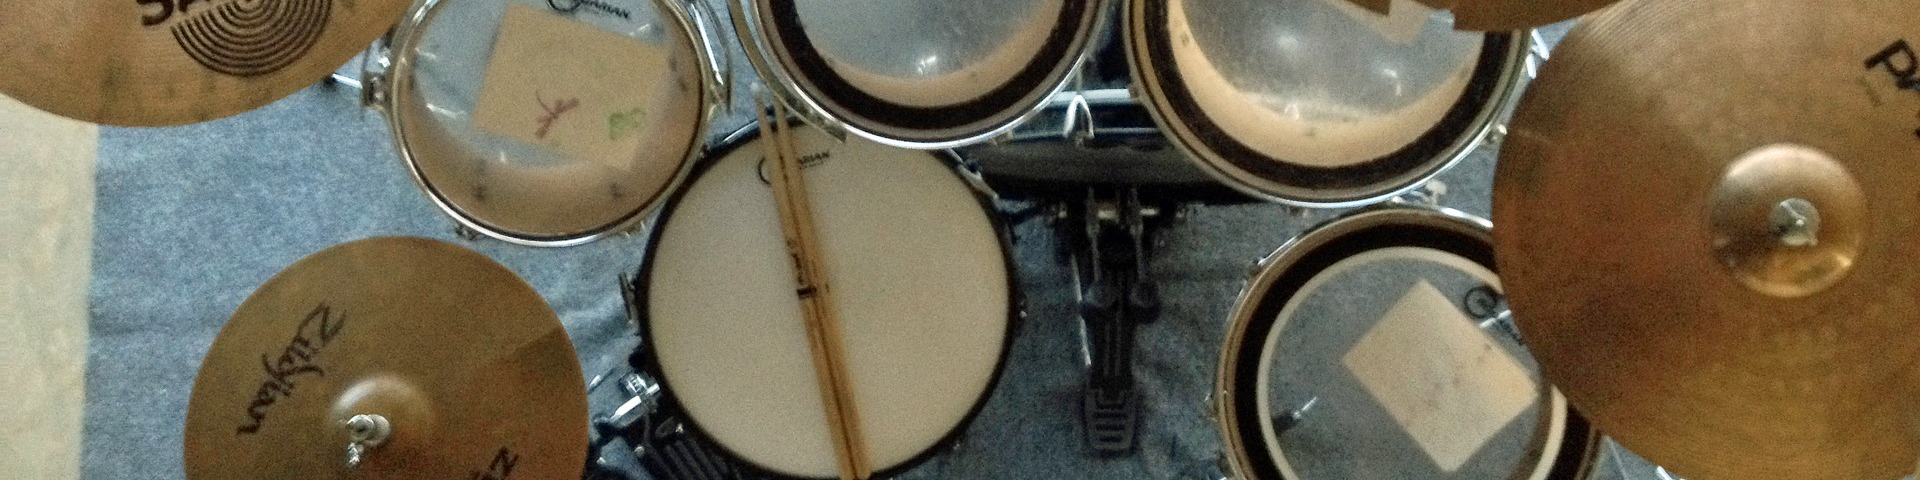 Overhead shot of a drum kit